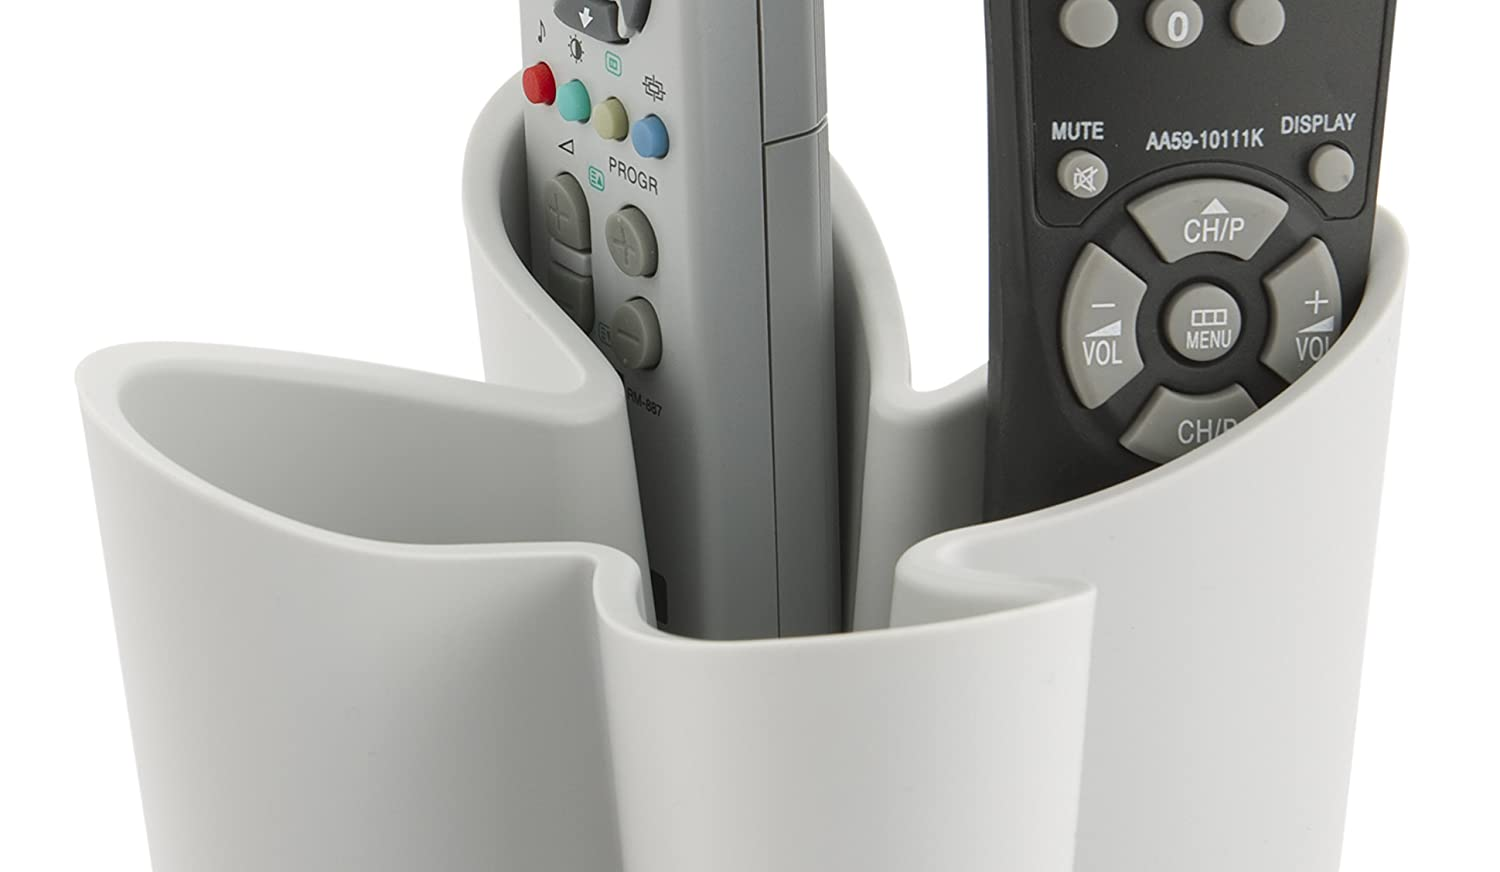 remote control holder | J-me original design cozy remote control tidy